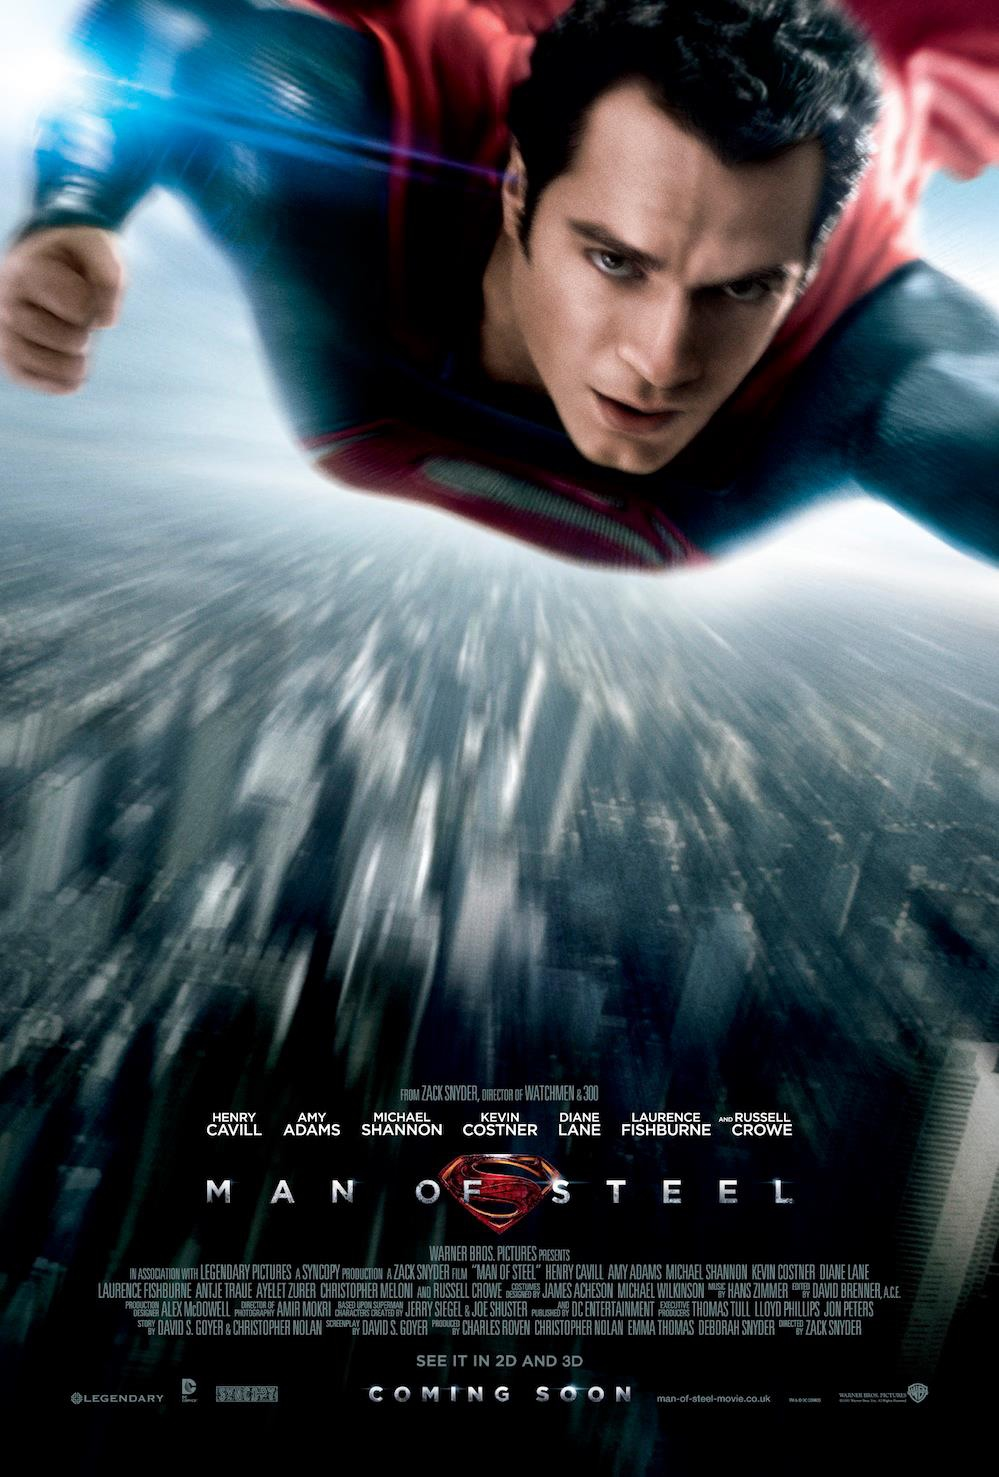 Man of Steel - Movie Poster #1 (Original)